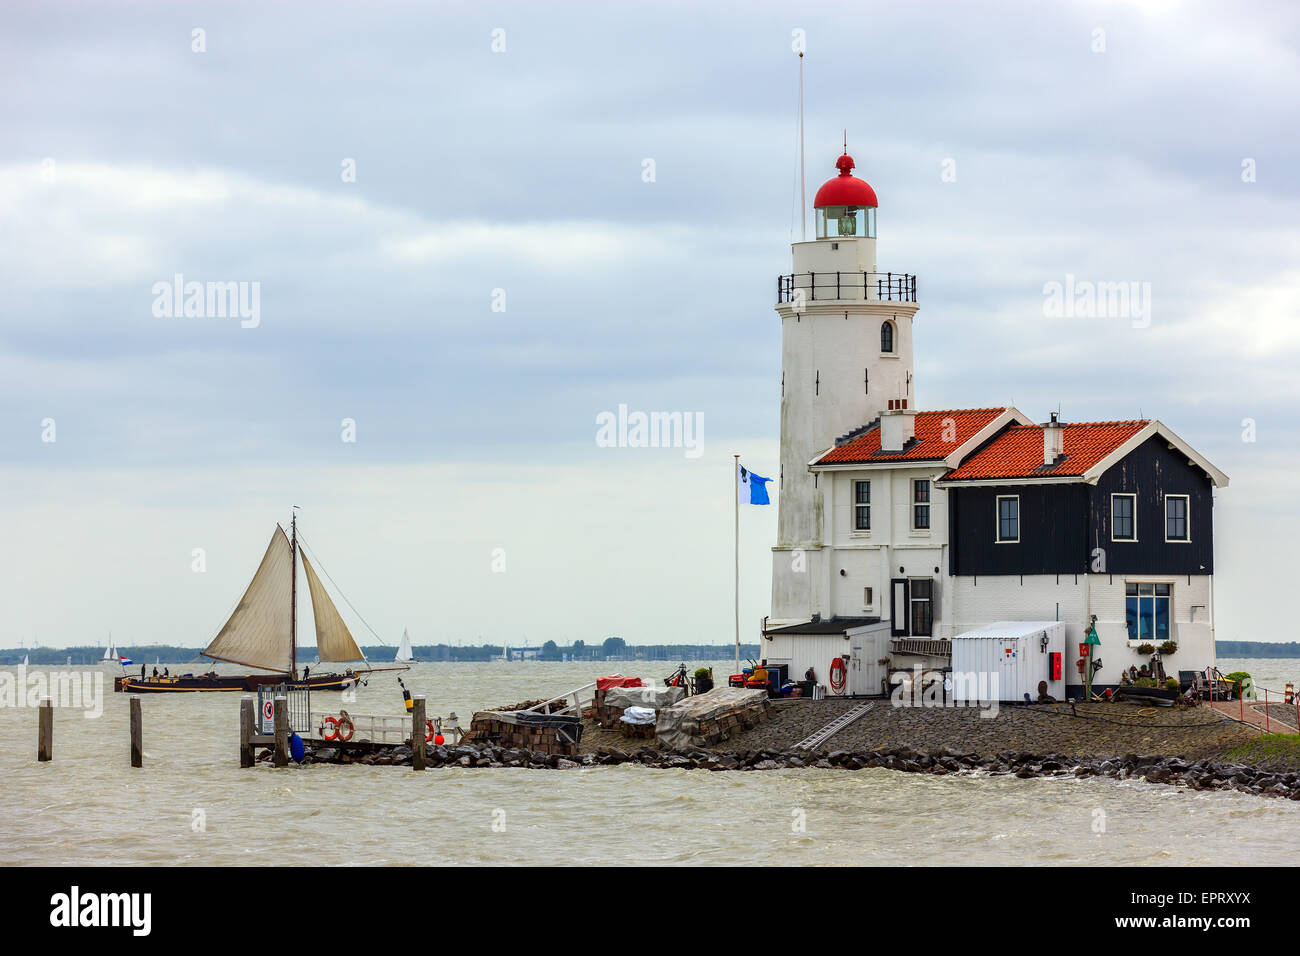 At Marken, close to Amsterdam stands the Lighthouse 'Paard van Marken'. - Stock Image